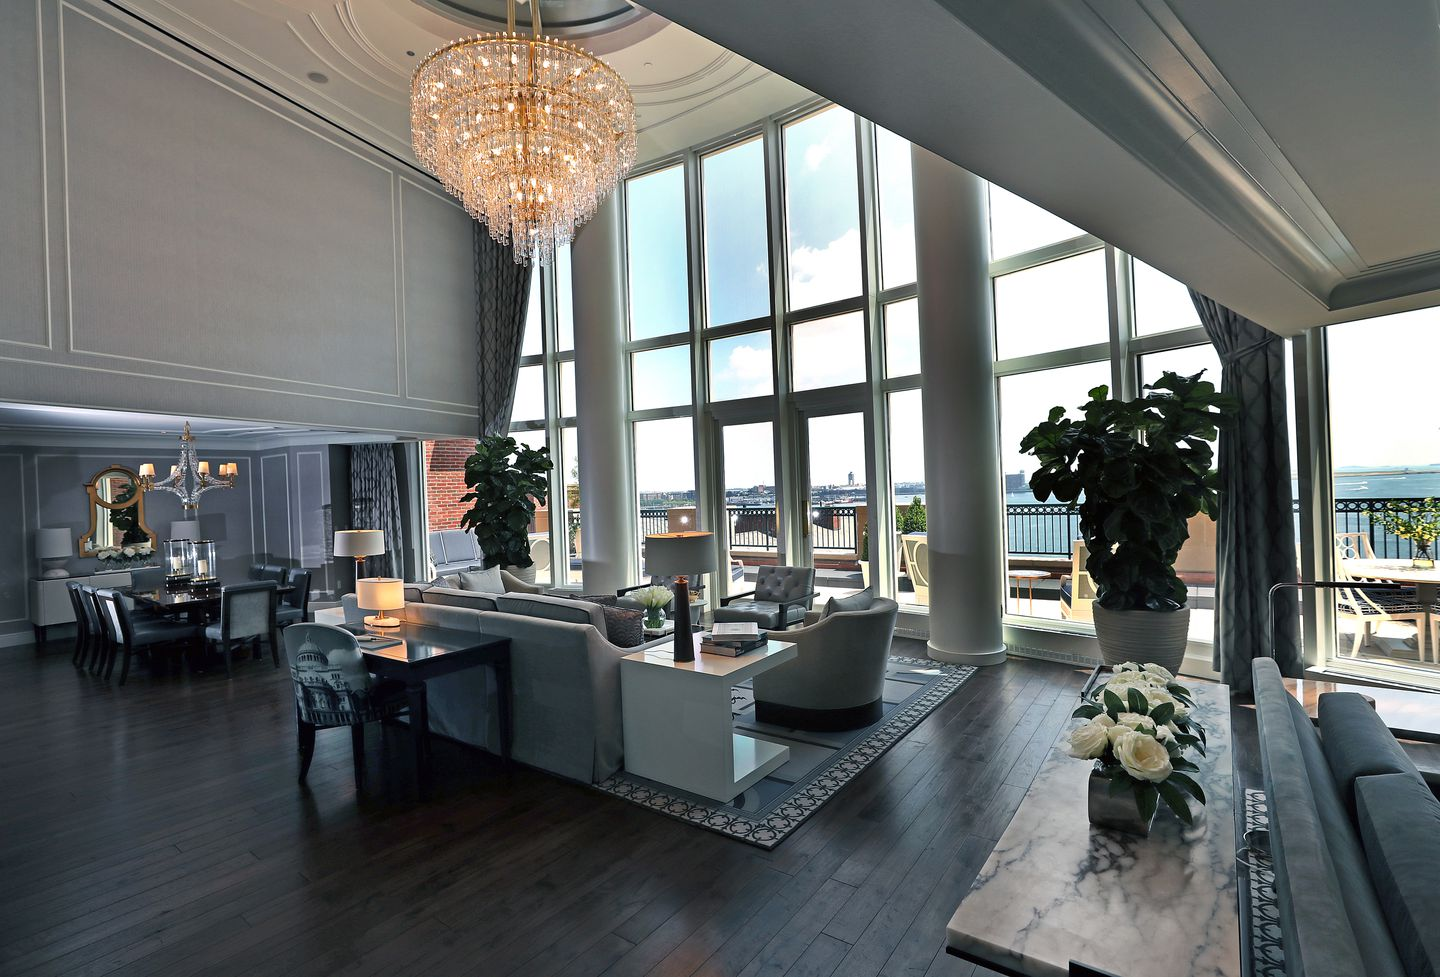 The main living area of the new, $15,000-a-night Presidential Suite at the Boston Harbor Hotel in Boston. This is the most expensive hotel room in Boston.